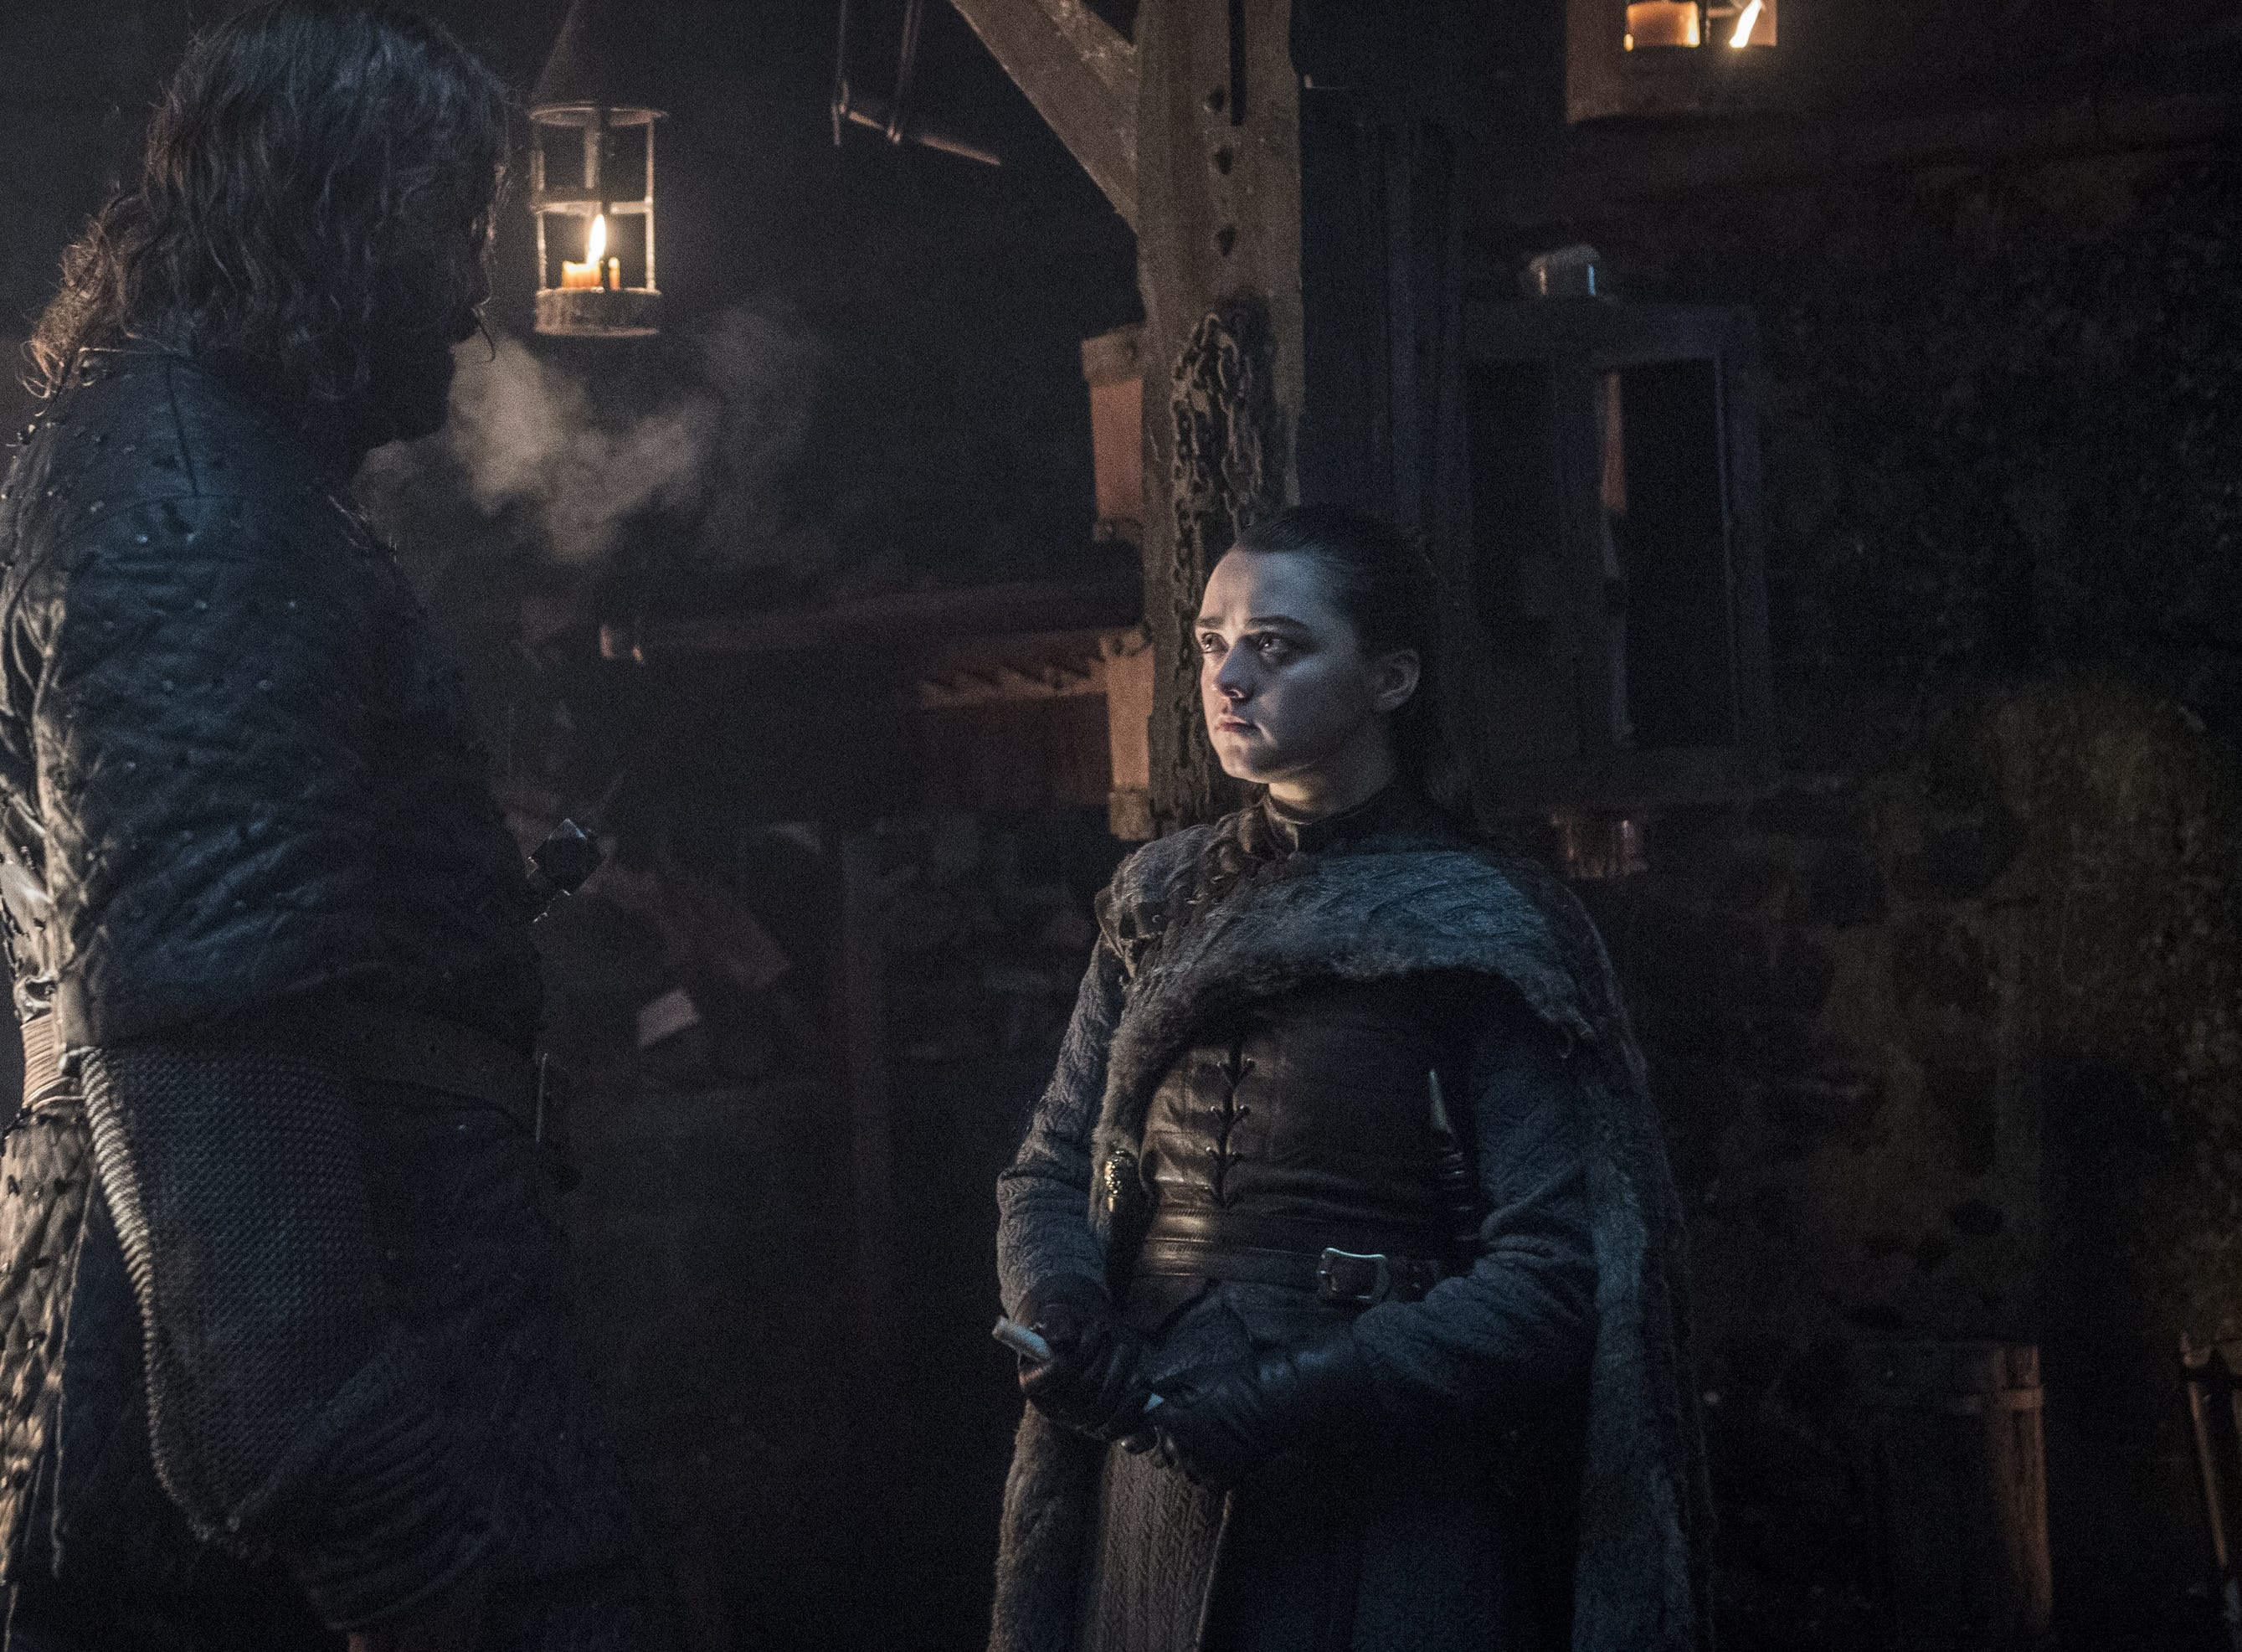 Arya Stark (Maisie Williams) talks to The Hound (Rory McCann) about the last time she saw him.